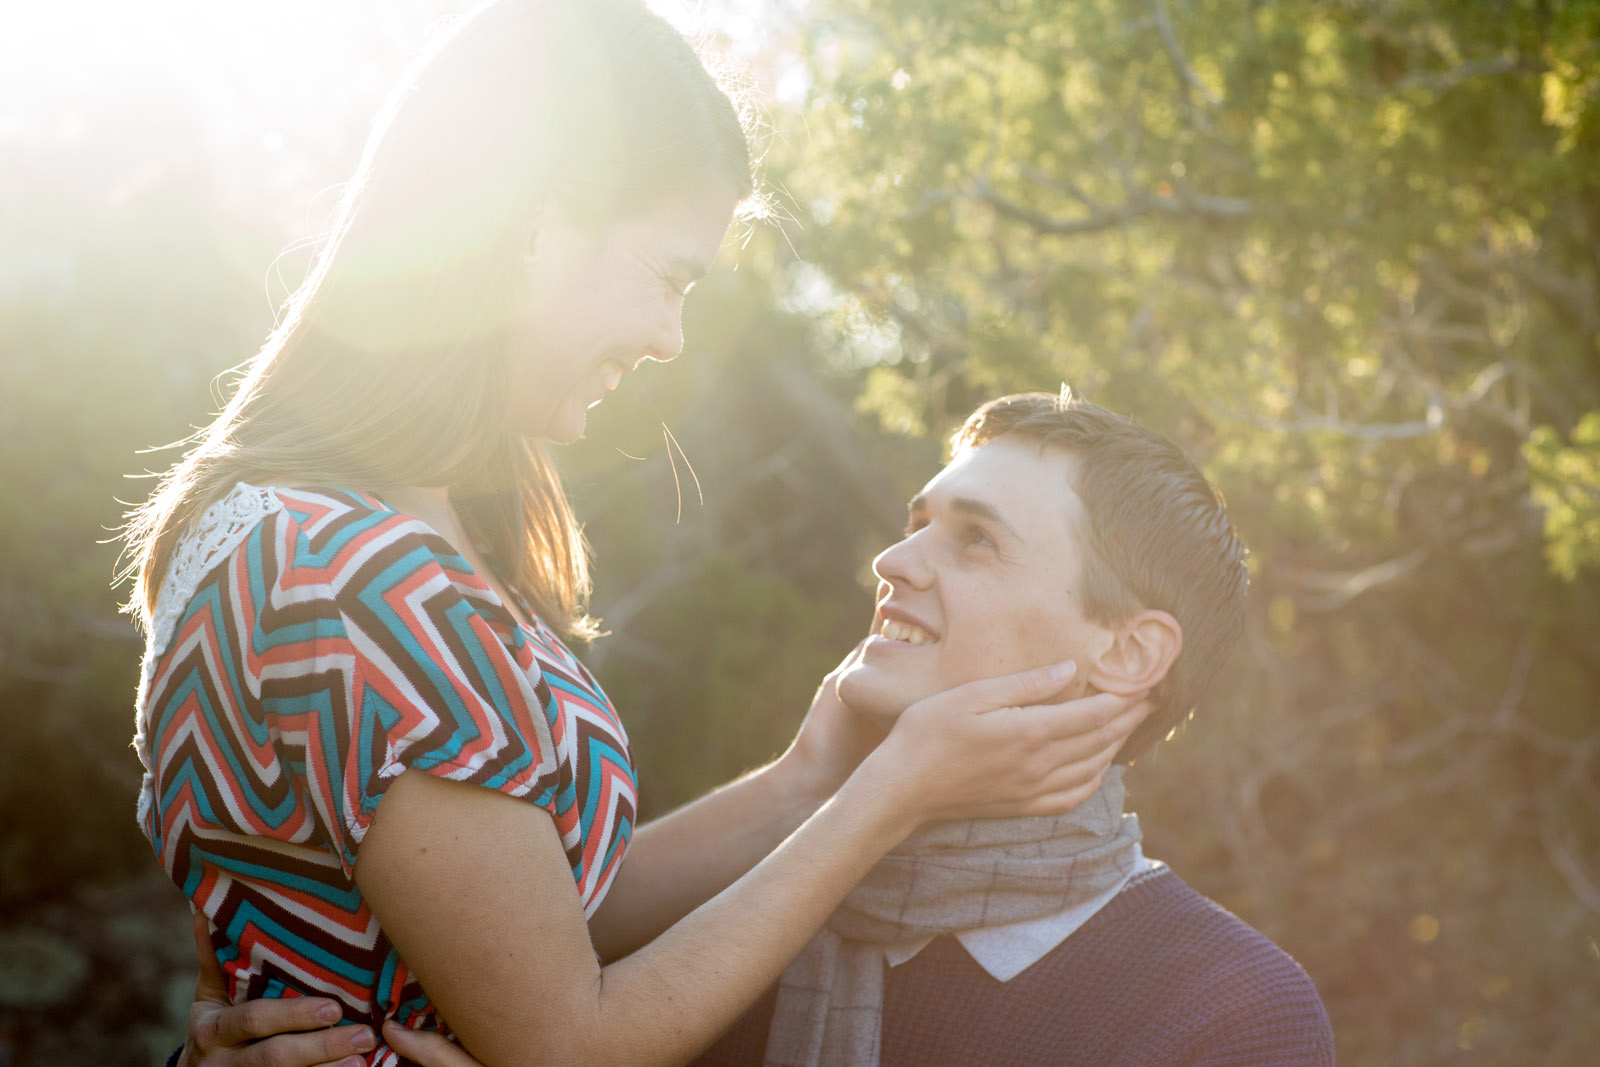 011-engagement-photographer-takes-nm-sun-sert-photos